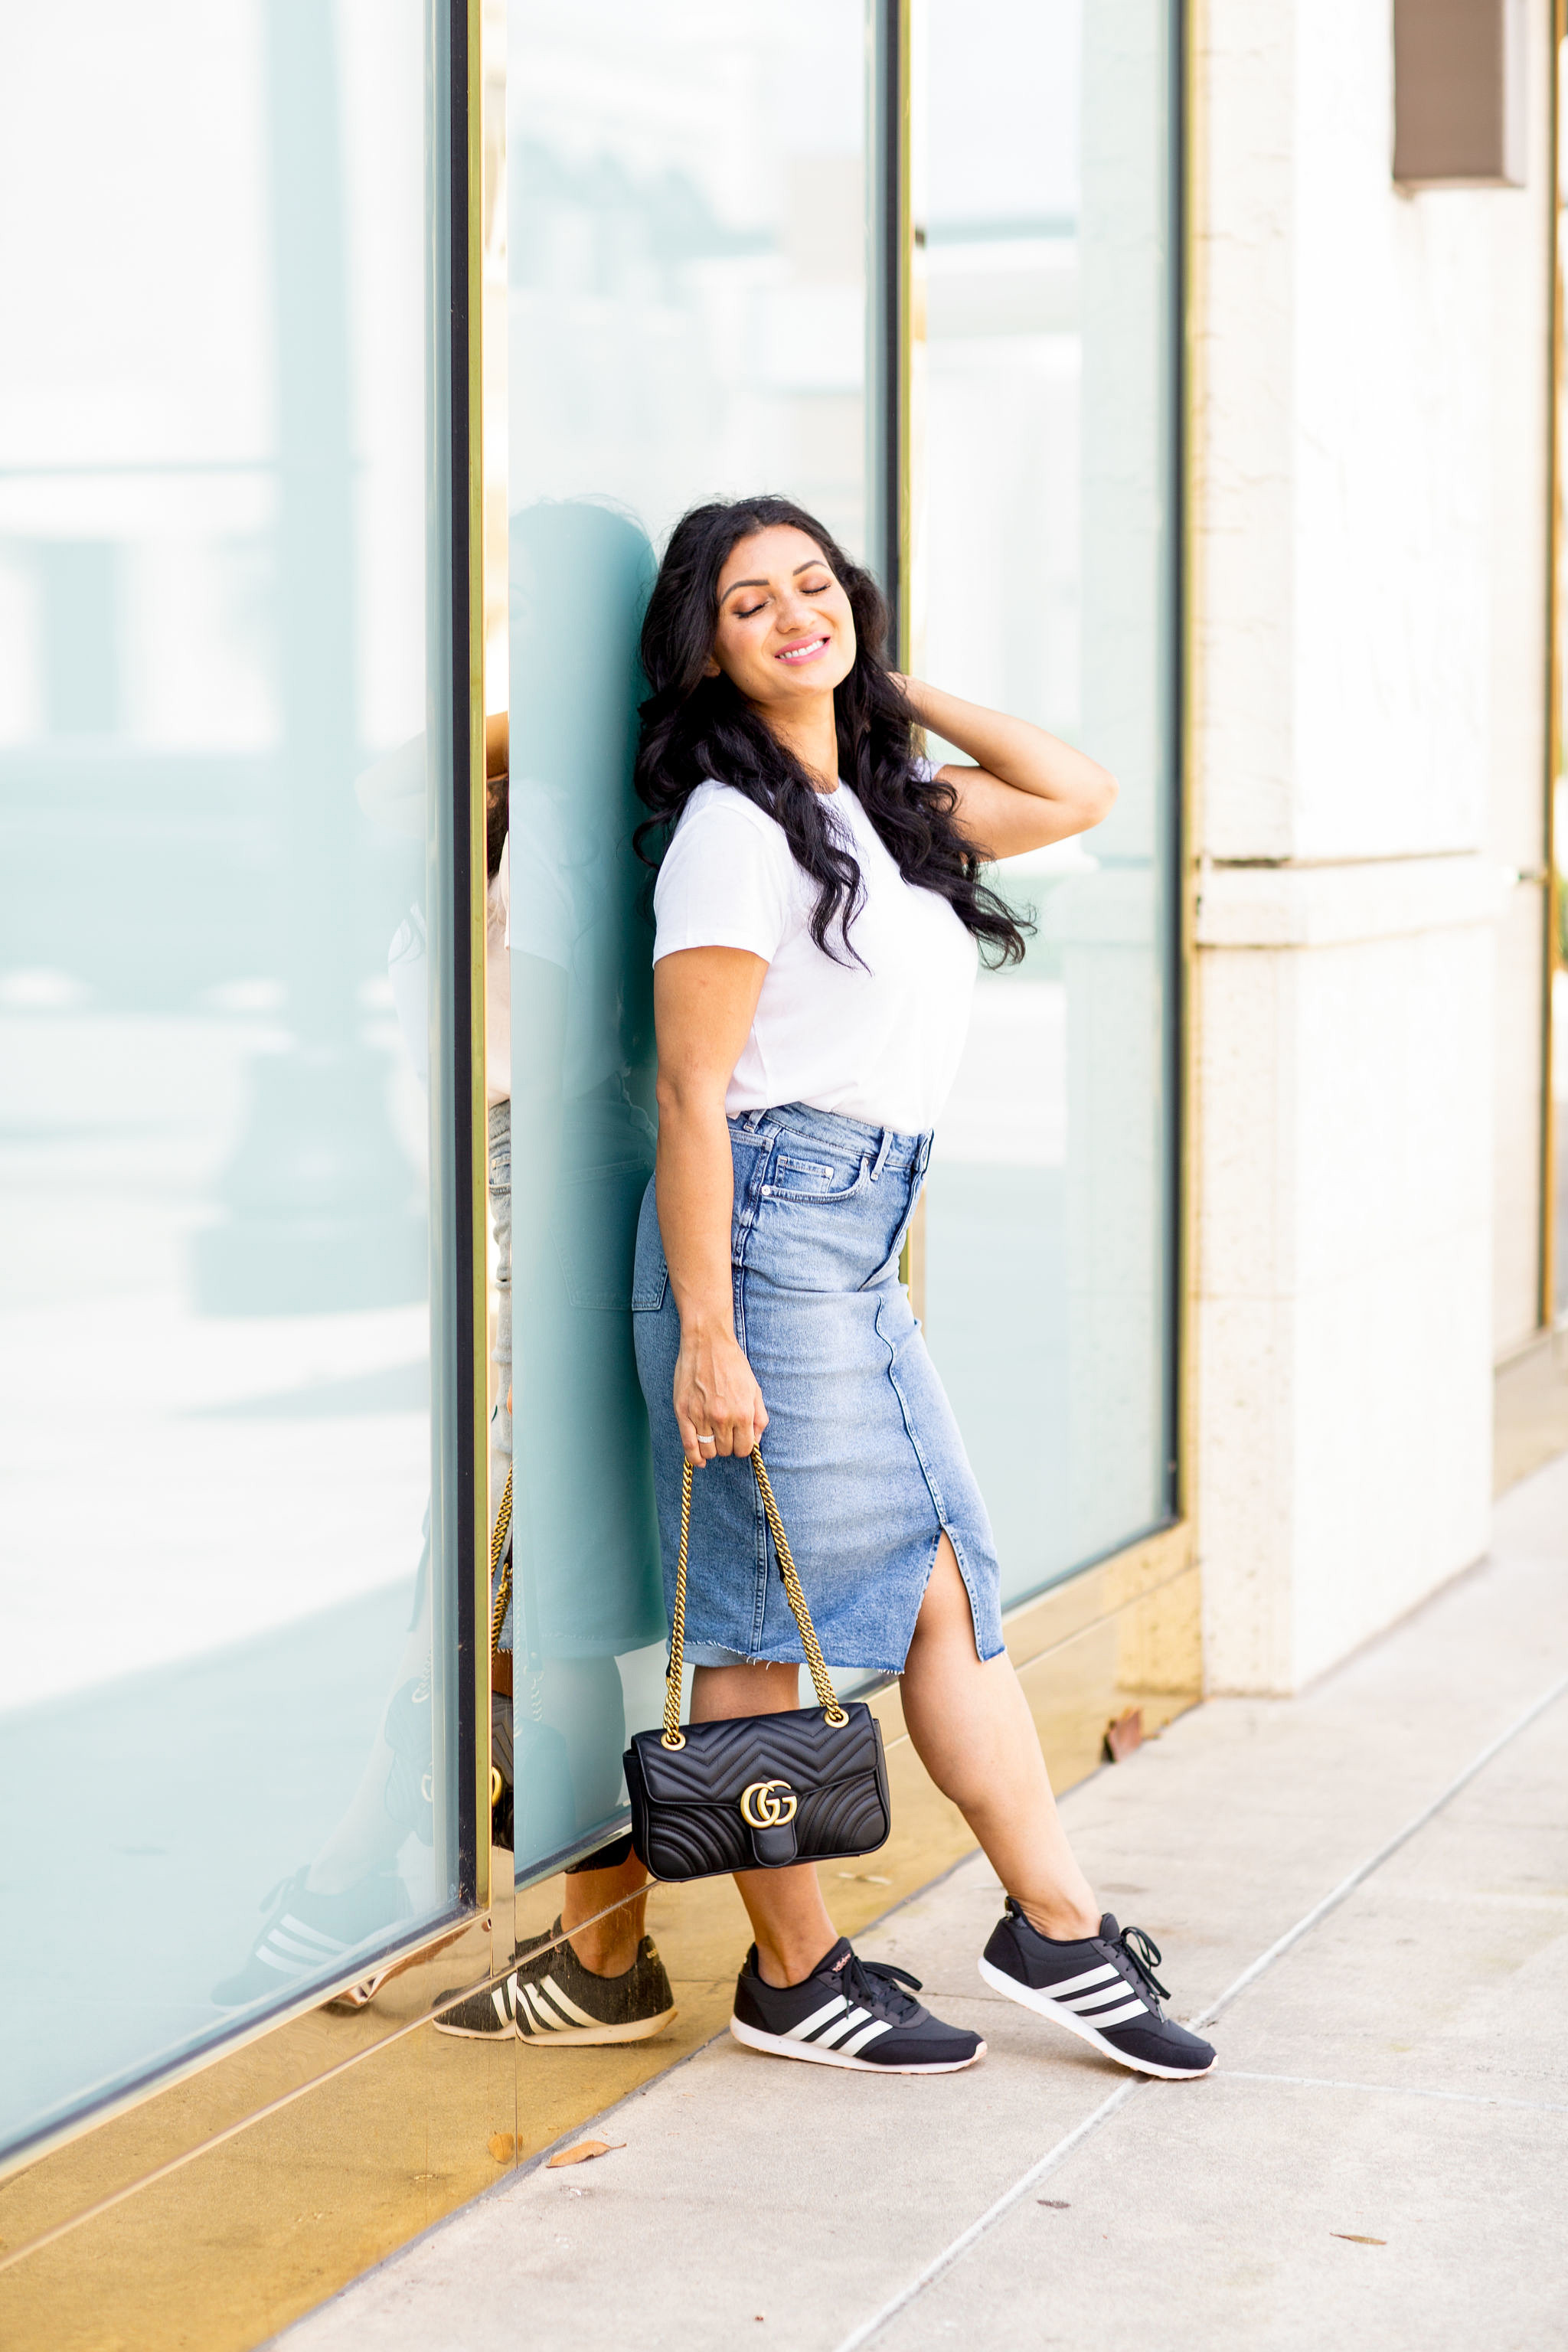 The perfect everyday outfit is just a click away. See what Orange County Blogger Debbie Savage is loving with the perfect everyday outfit here!